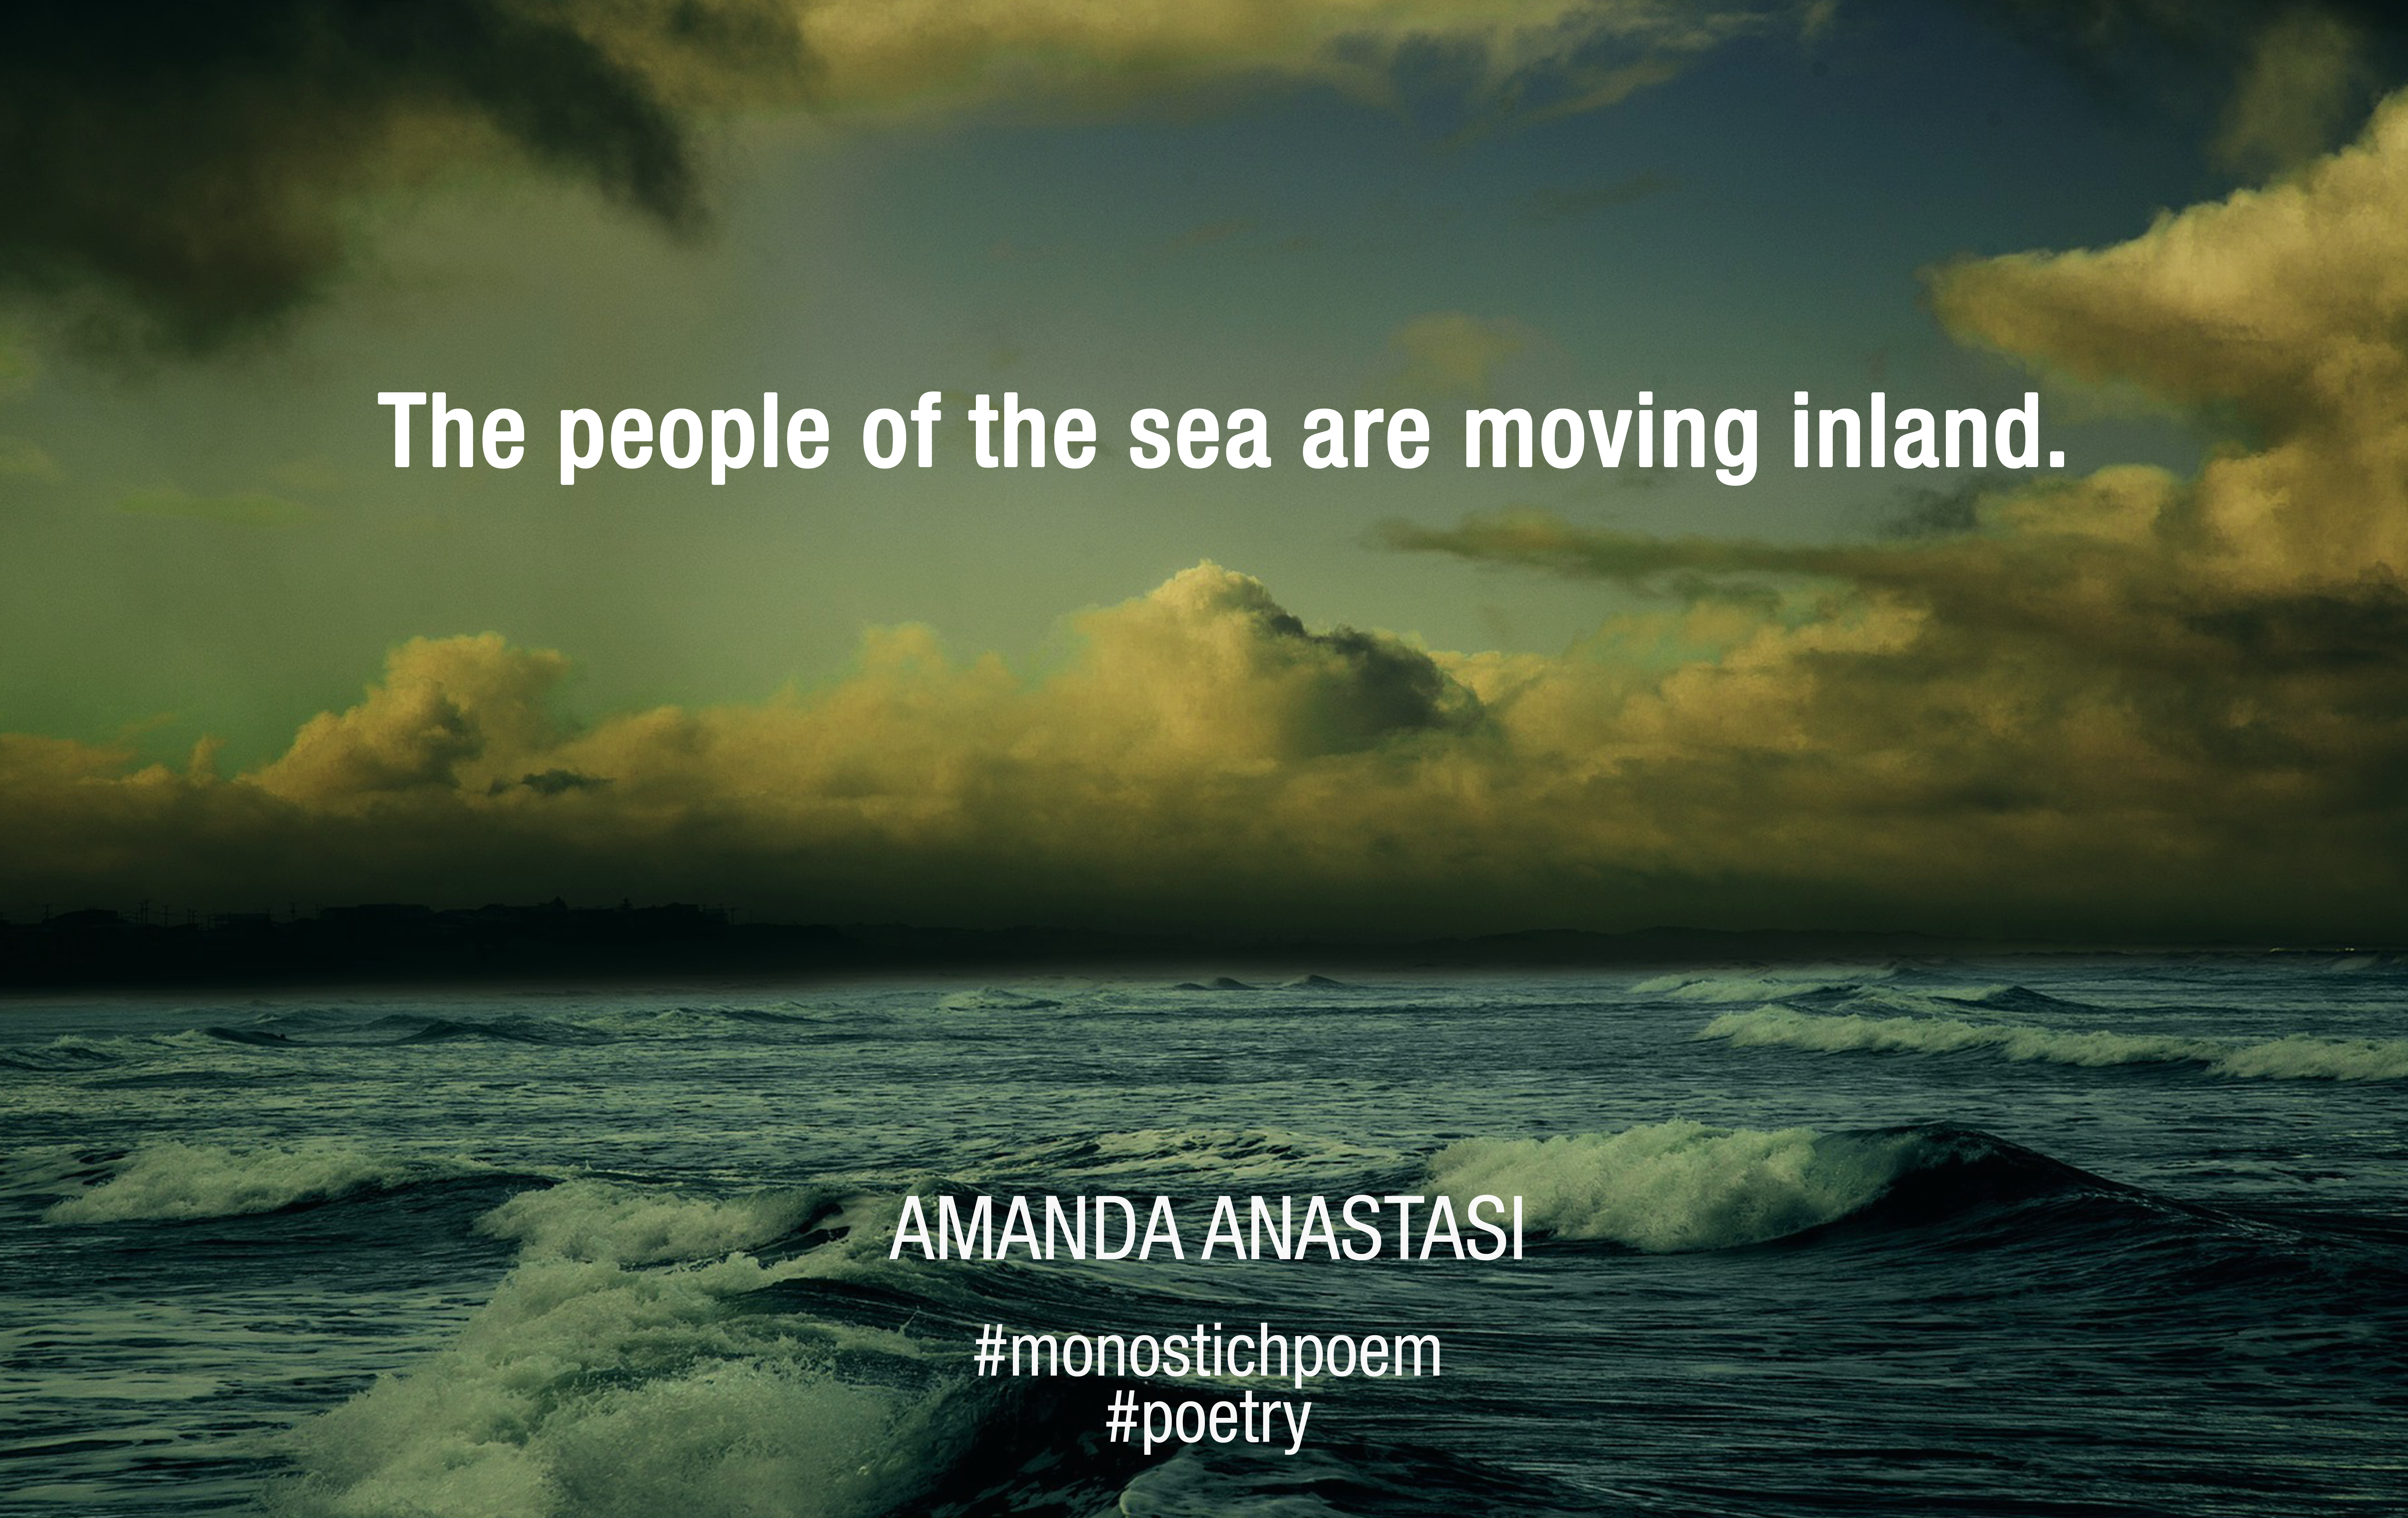 The people of the sea are moving inland.